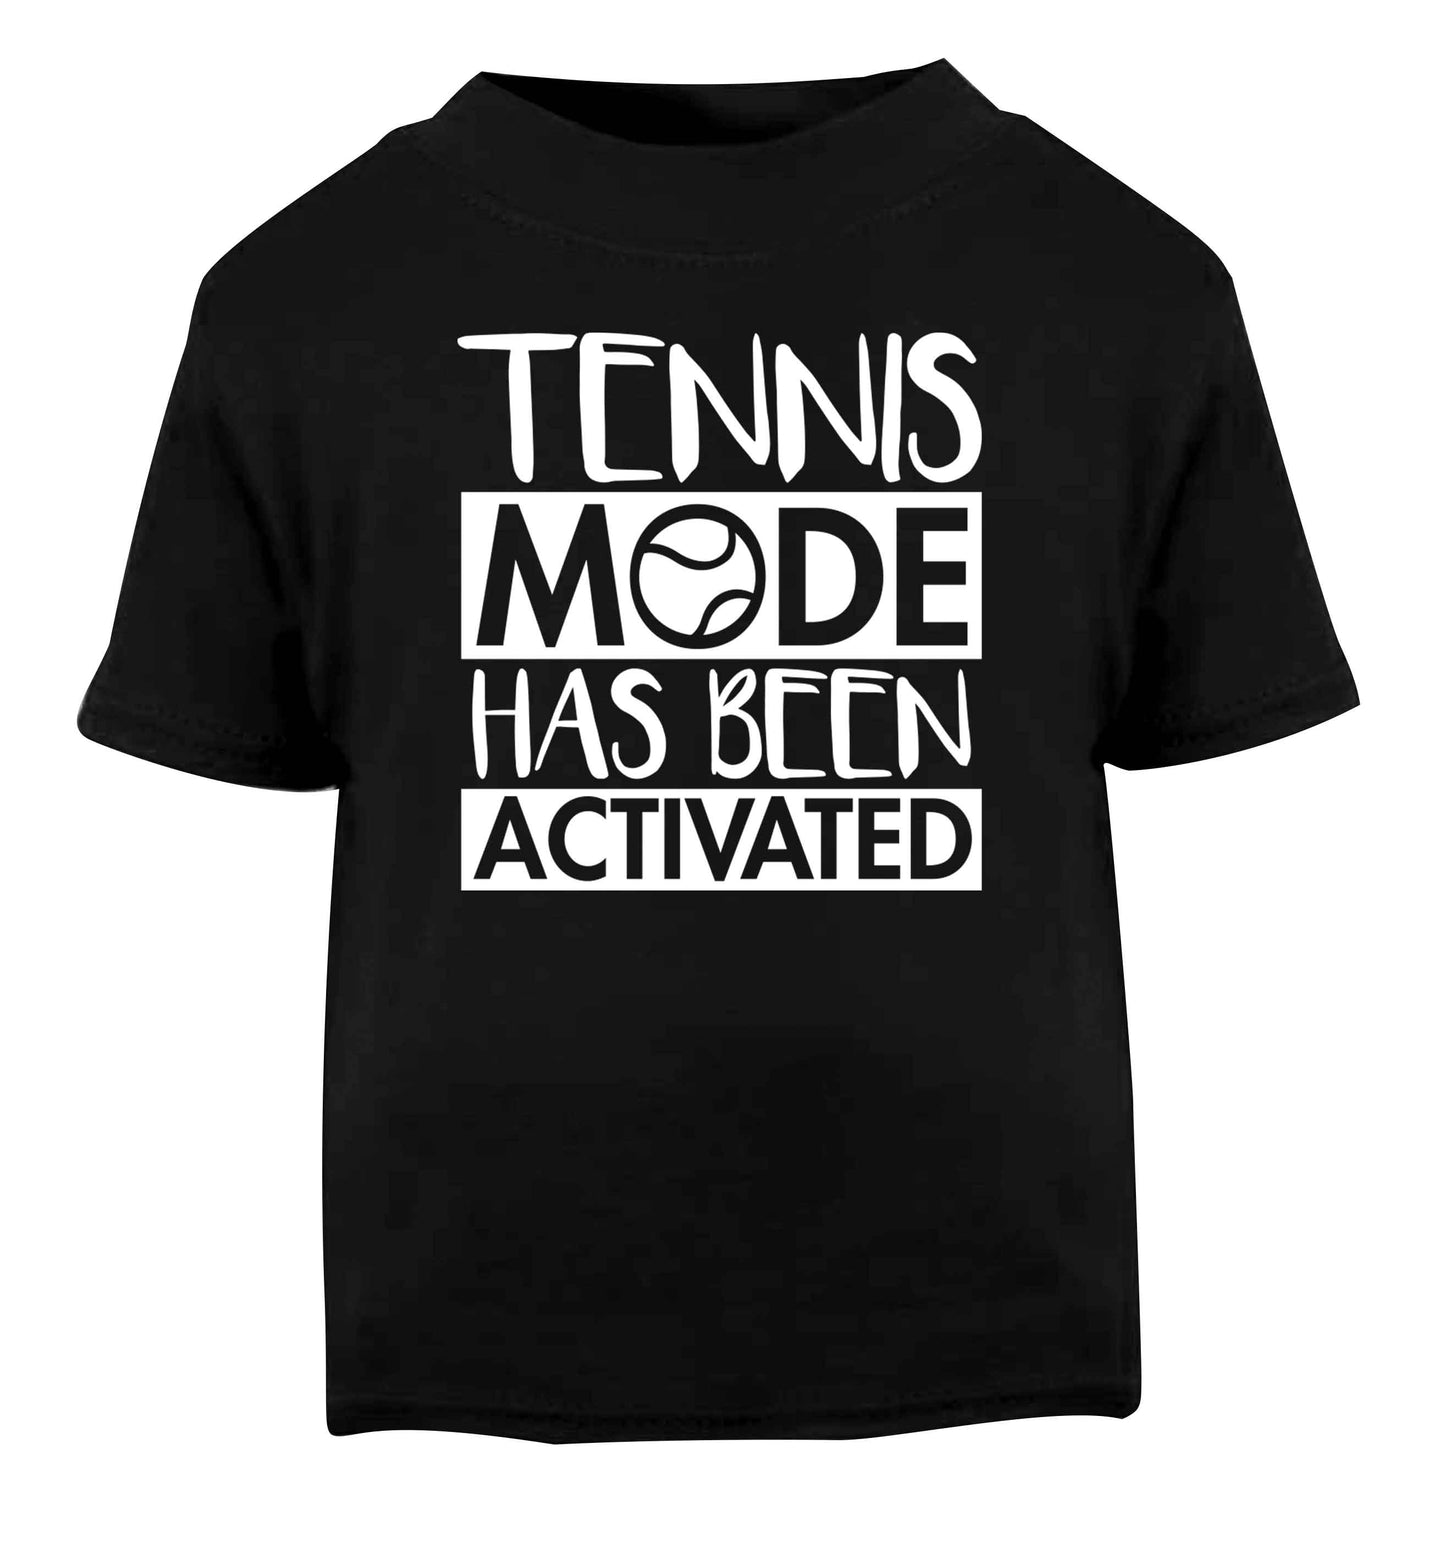 Tennis mode has been activated Black Baby Toddler Tshirt 2 years